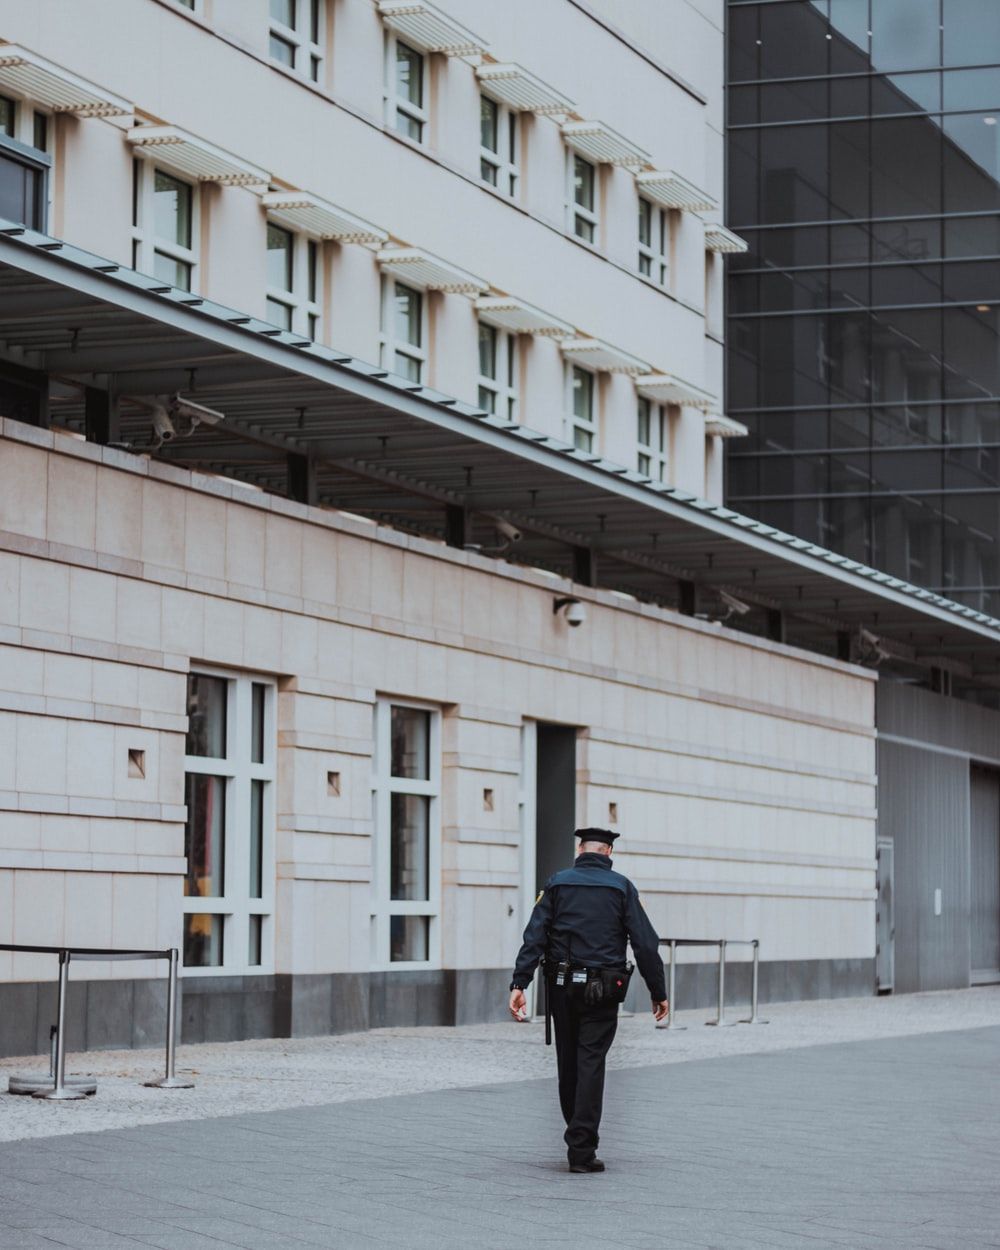 police man walking near building